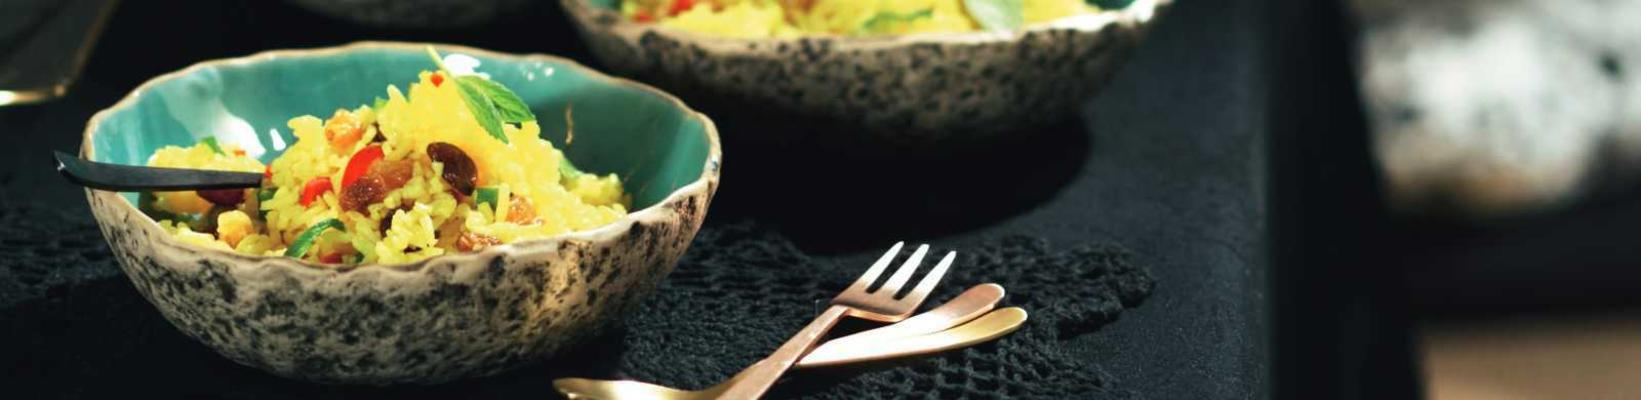 bowls of curry rice salad